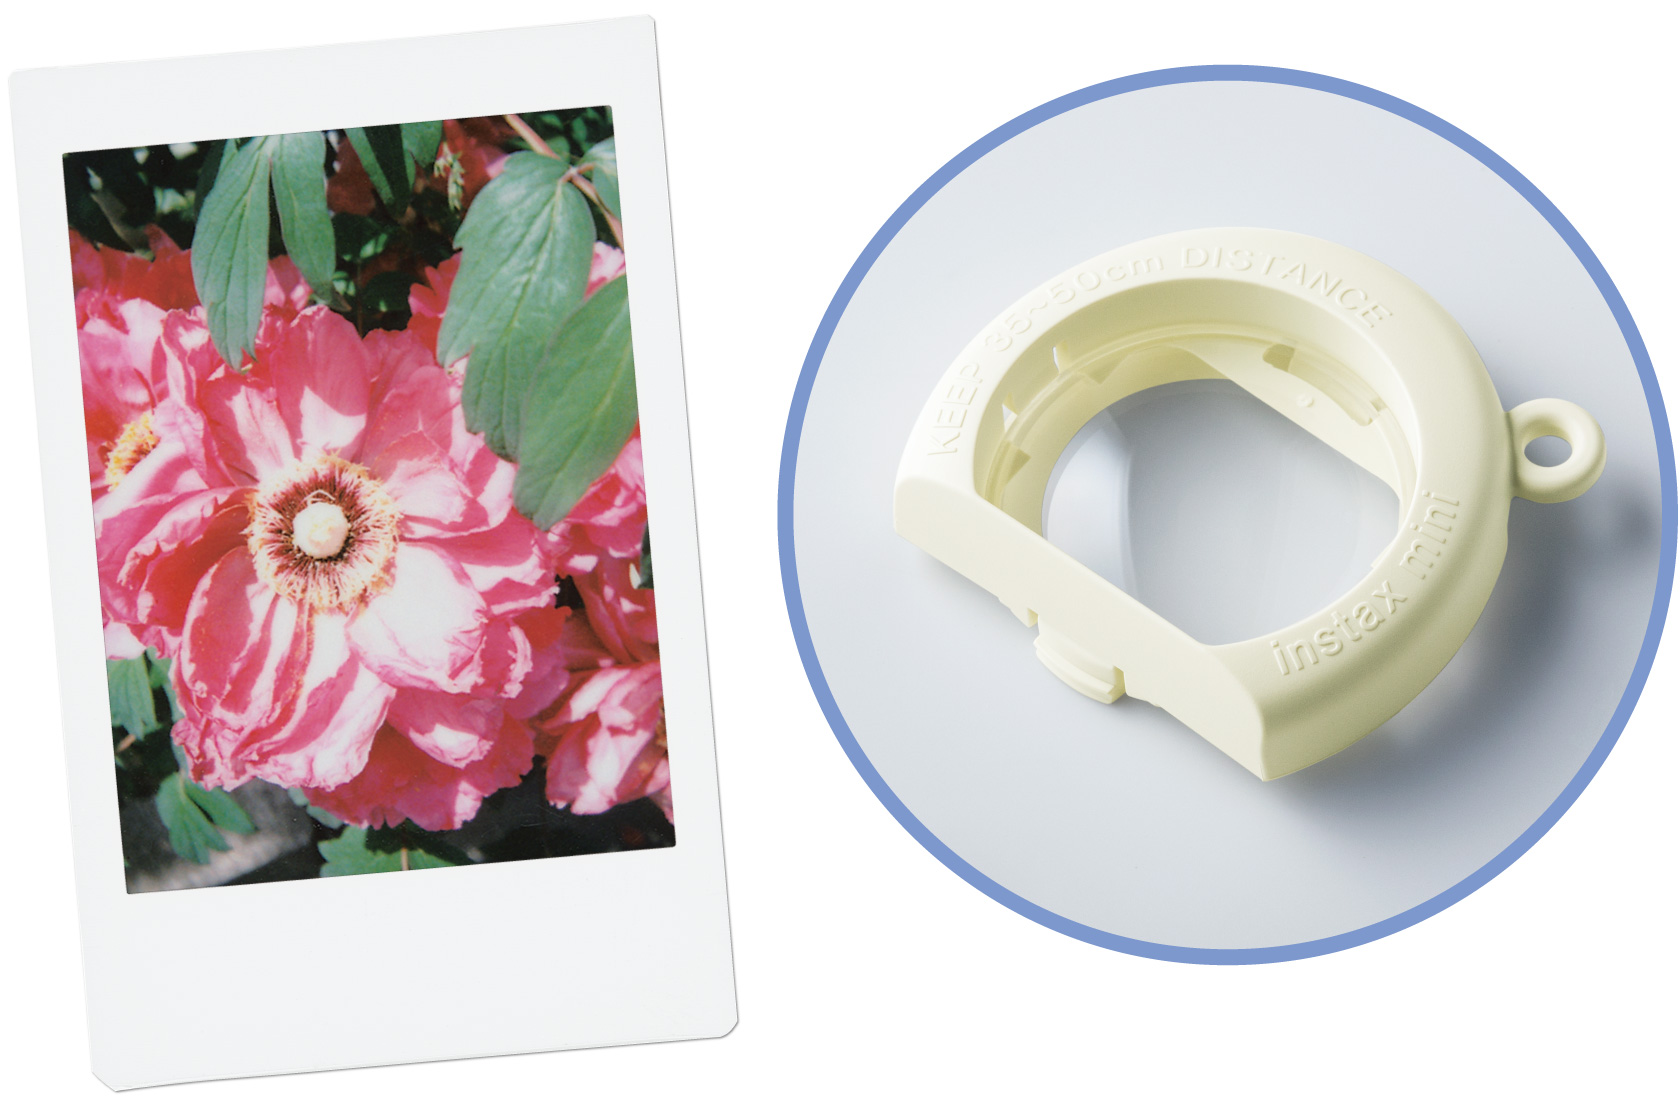 Image of the mini picture and Close-up lens attachment